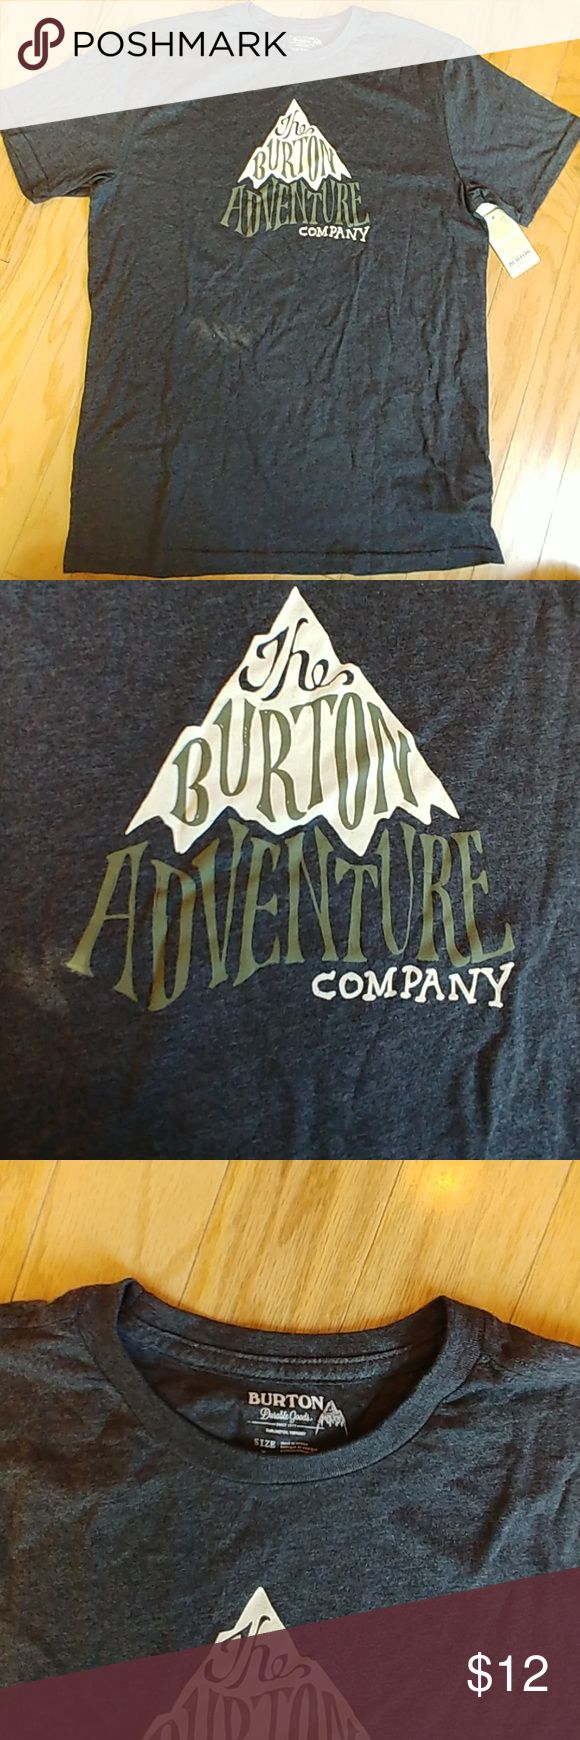 Burton Snowboard tee shirt Nwt Super soft Burton Snowboard tee shirt in heather black Nwt Burton Shirts Tees - Short Sleeve